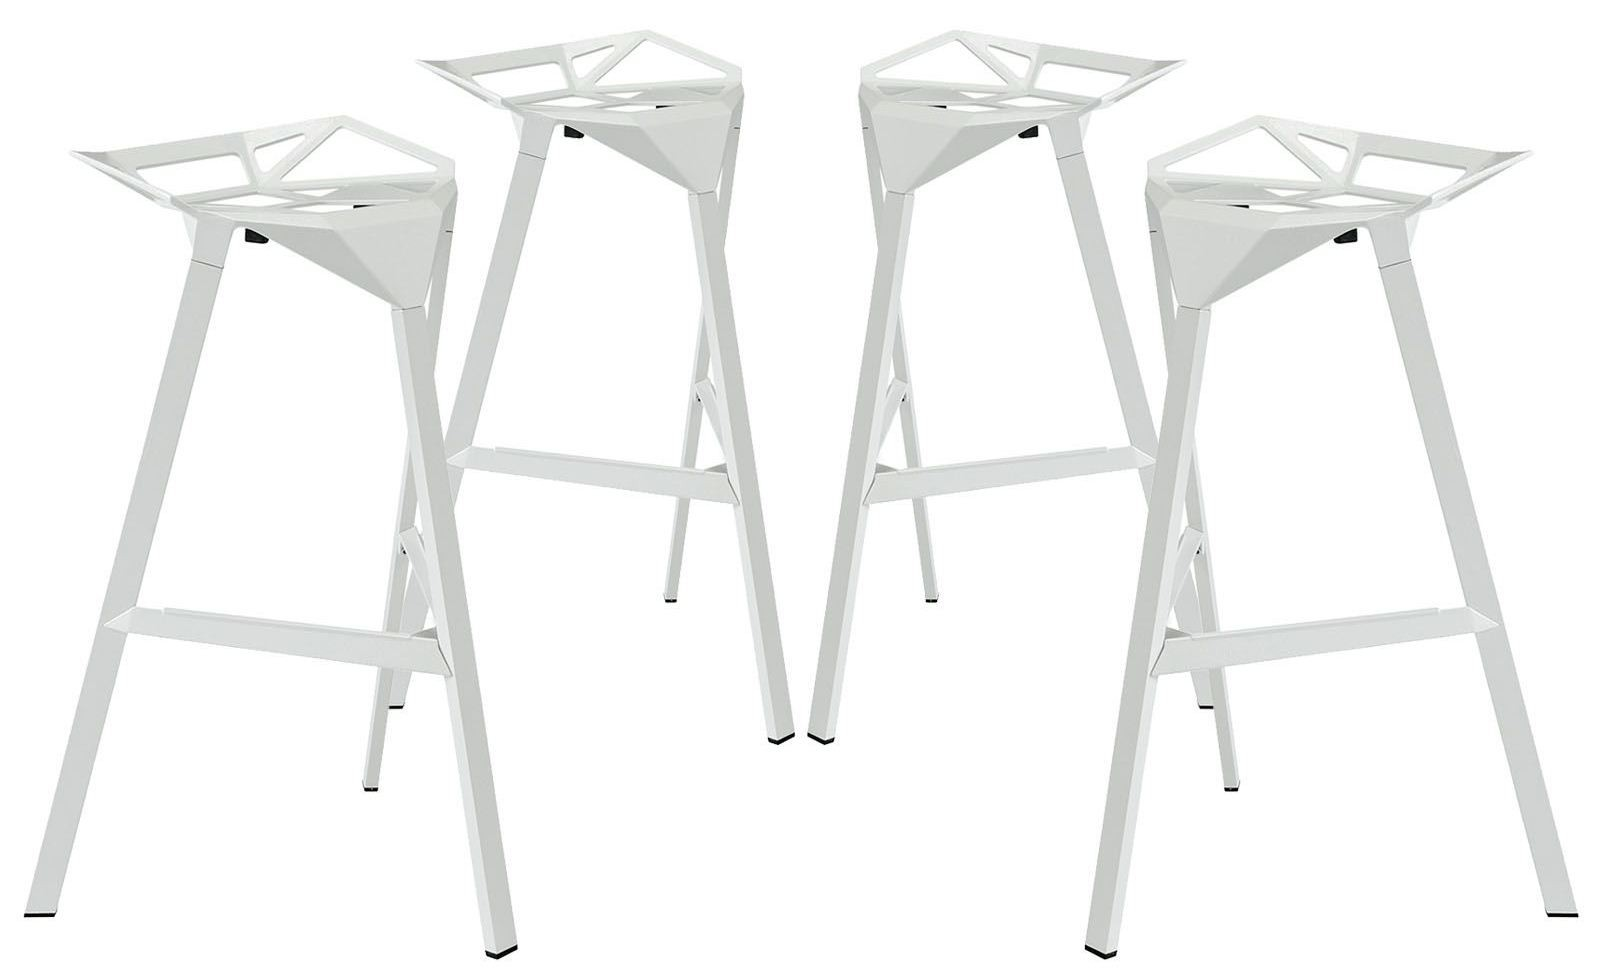 Launch White Stacking Bar Stool Set of 4 from Renegade  : eei 1363 whi from colemanfurniture.com size 1600 x 979 jpeg 85kB